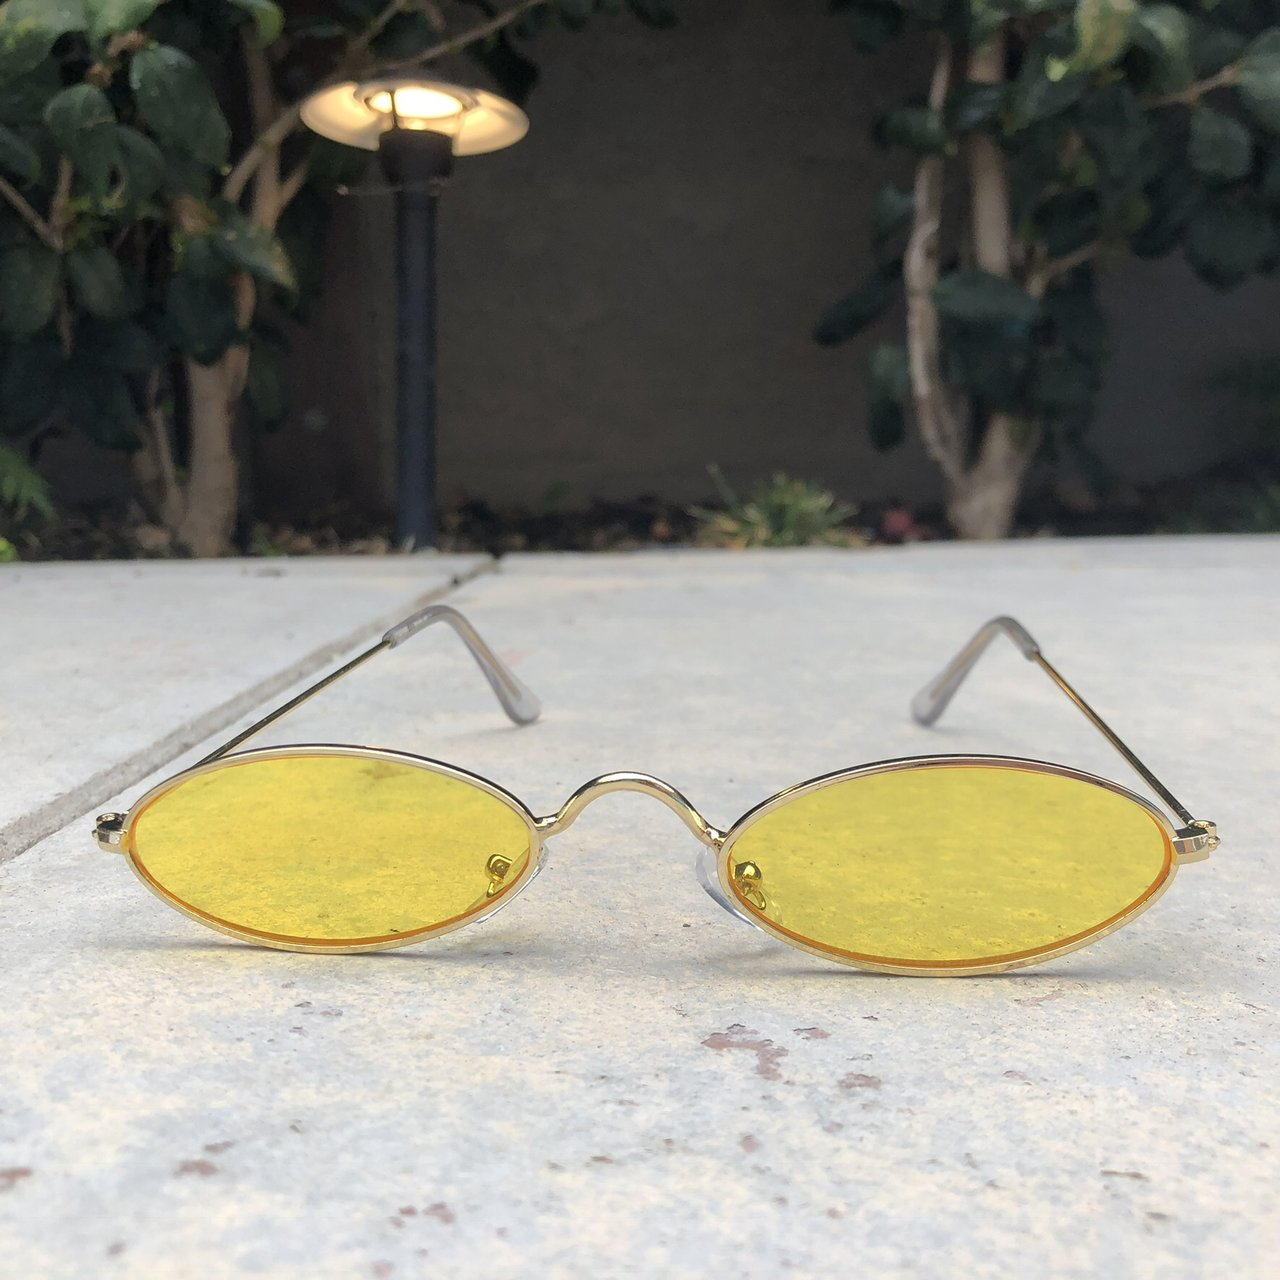 bb9e9dba099 slim oval small sunglasses. Yellow tinted lenses with gold - Depop